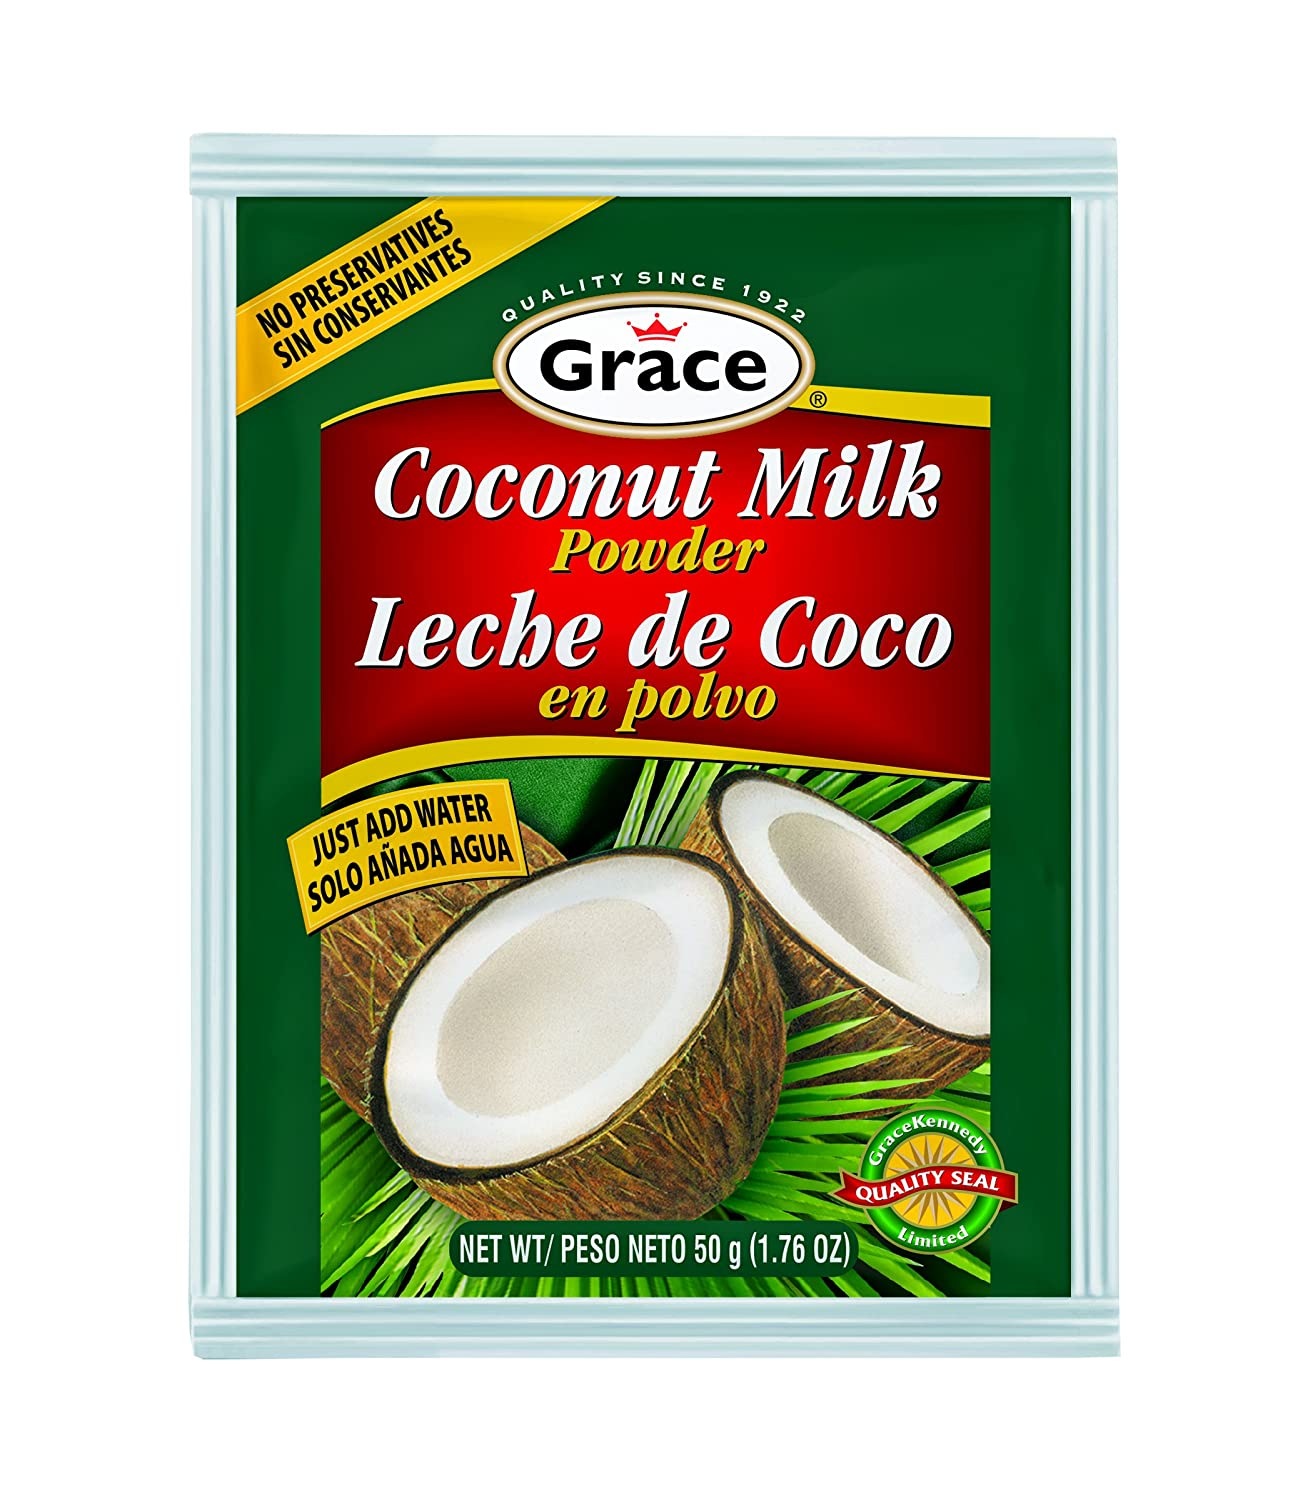 Grace Coconut Milk Powder (USA) 36 Pack